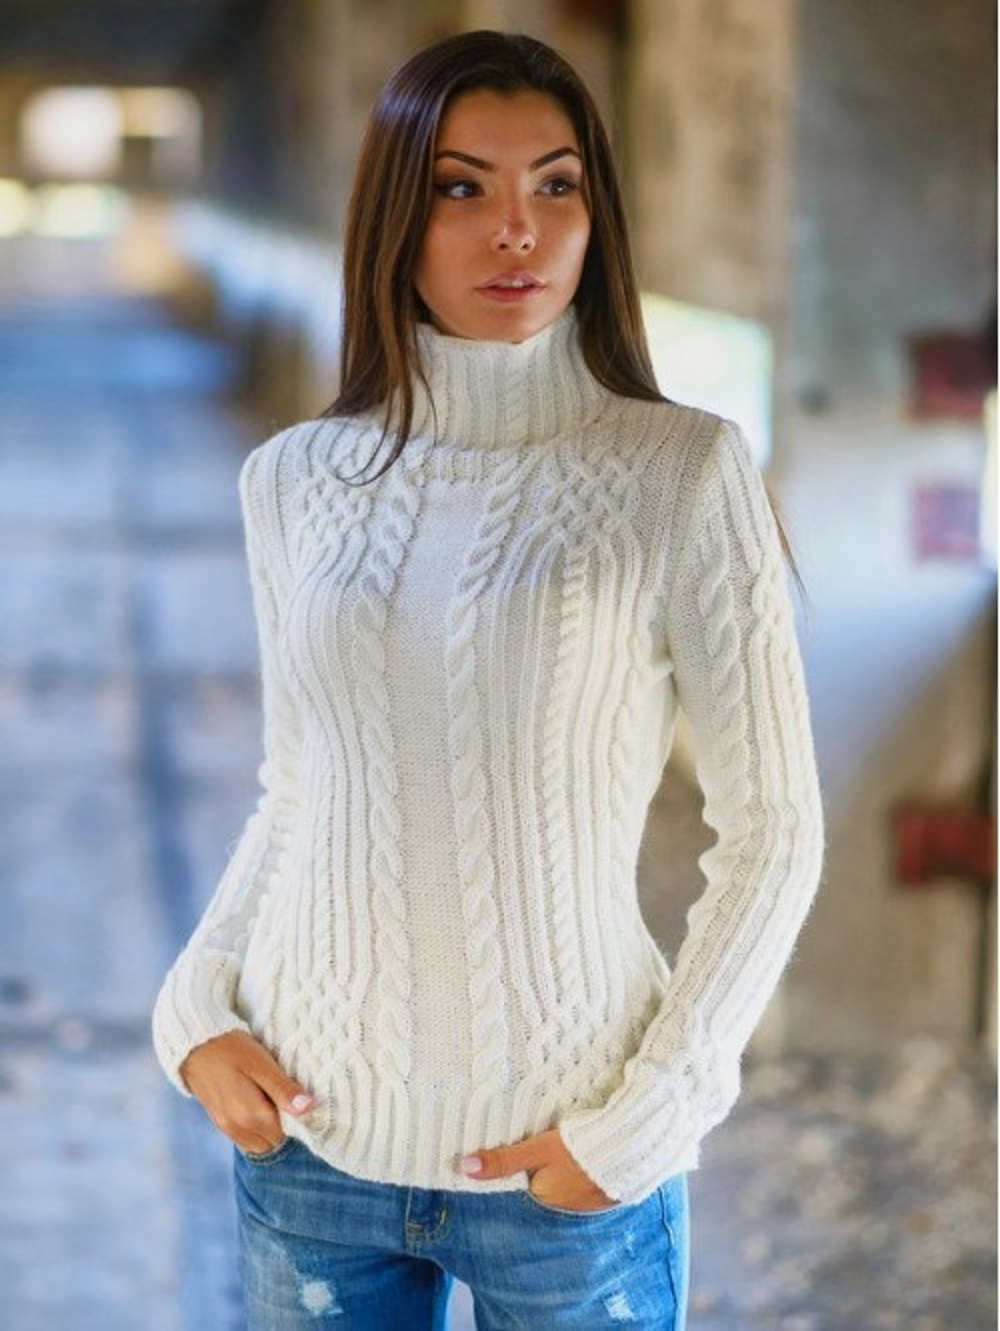 Knitted white sweater Warm winter sweater Autumn Woman sweater White sweater for woman Sweater long sleeve stand collar  turtleneck sweater